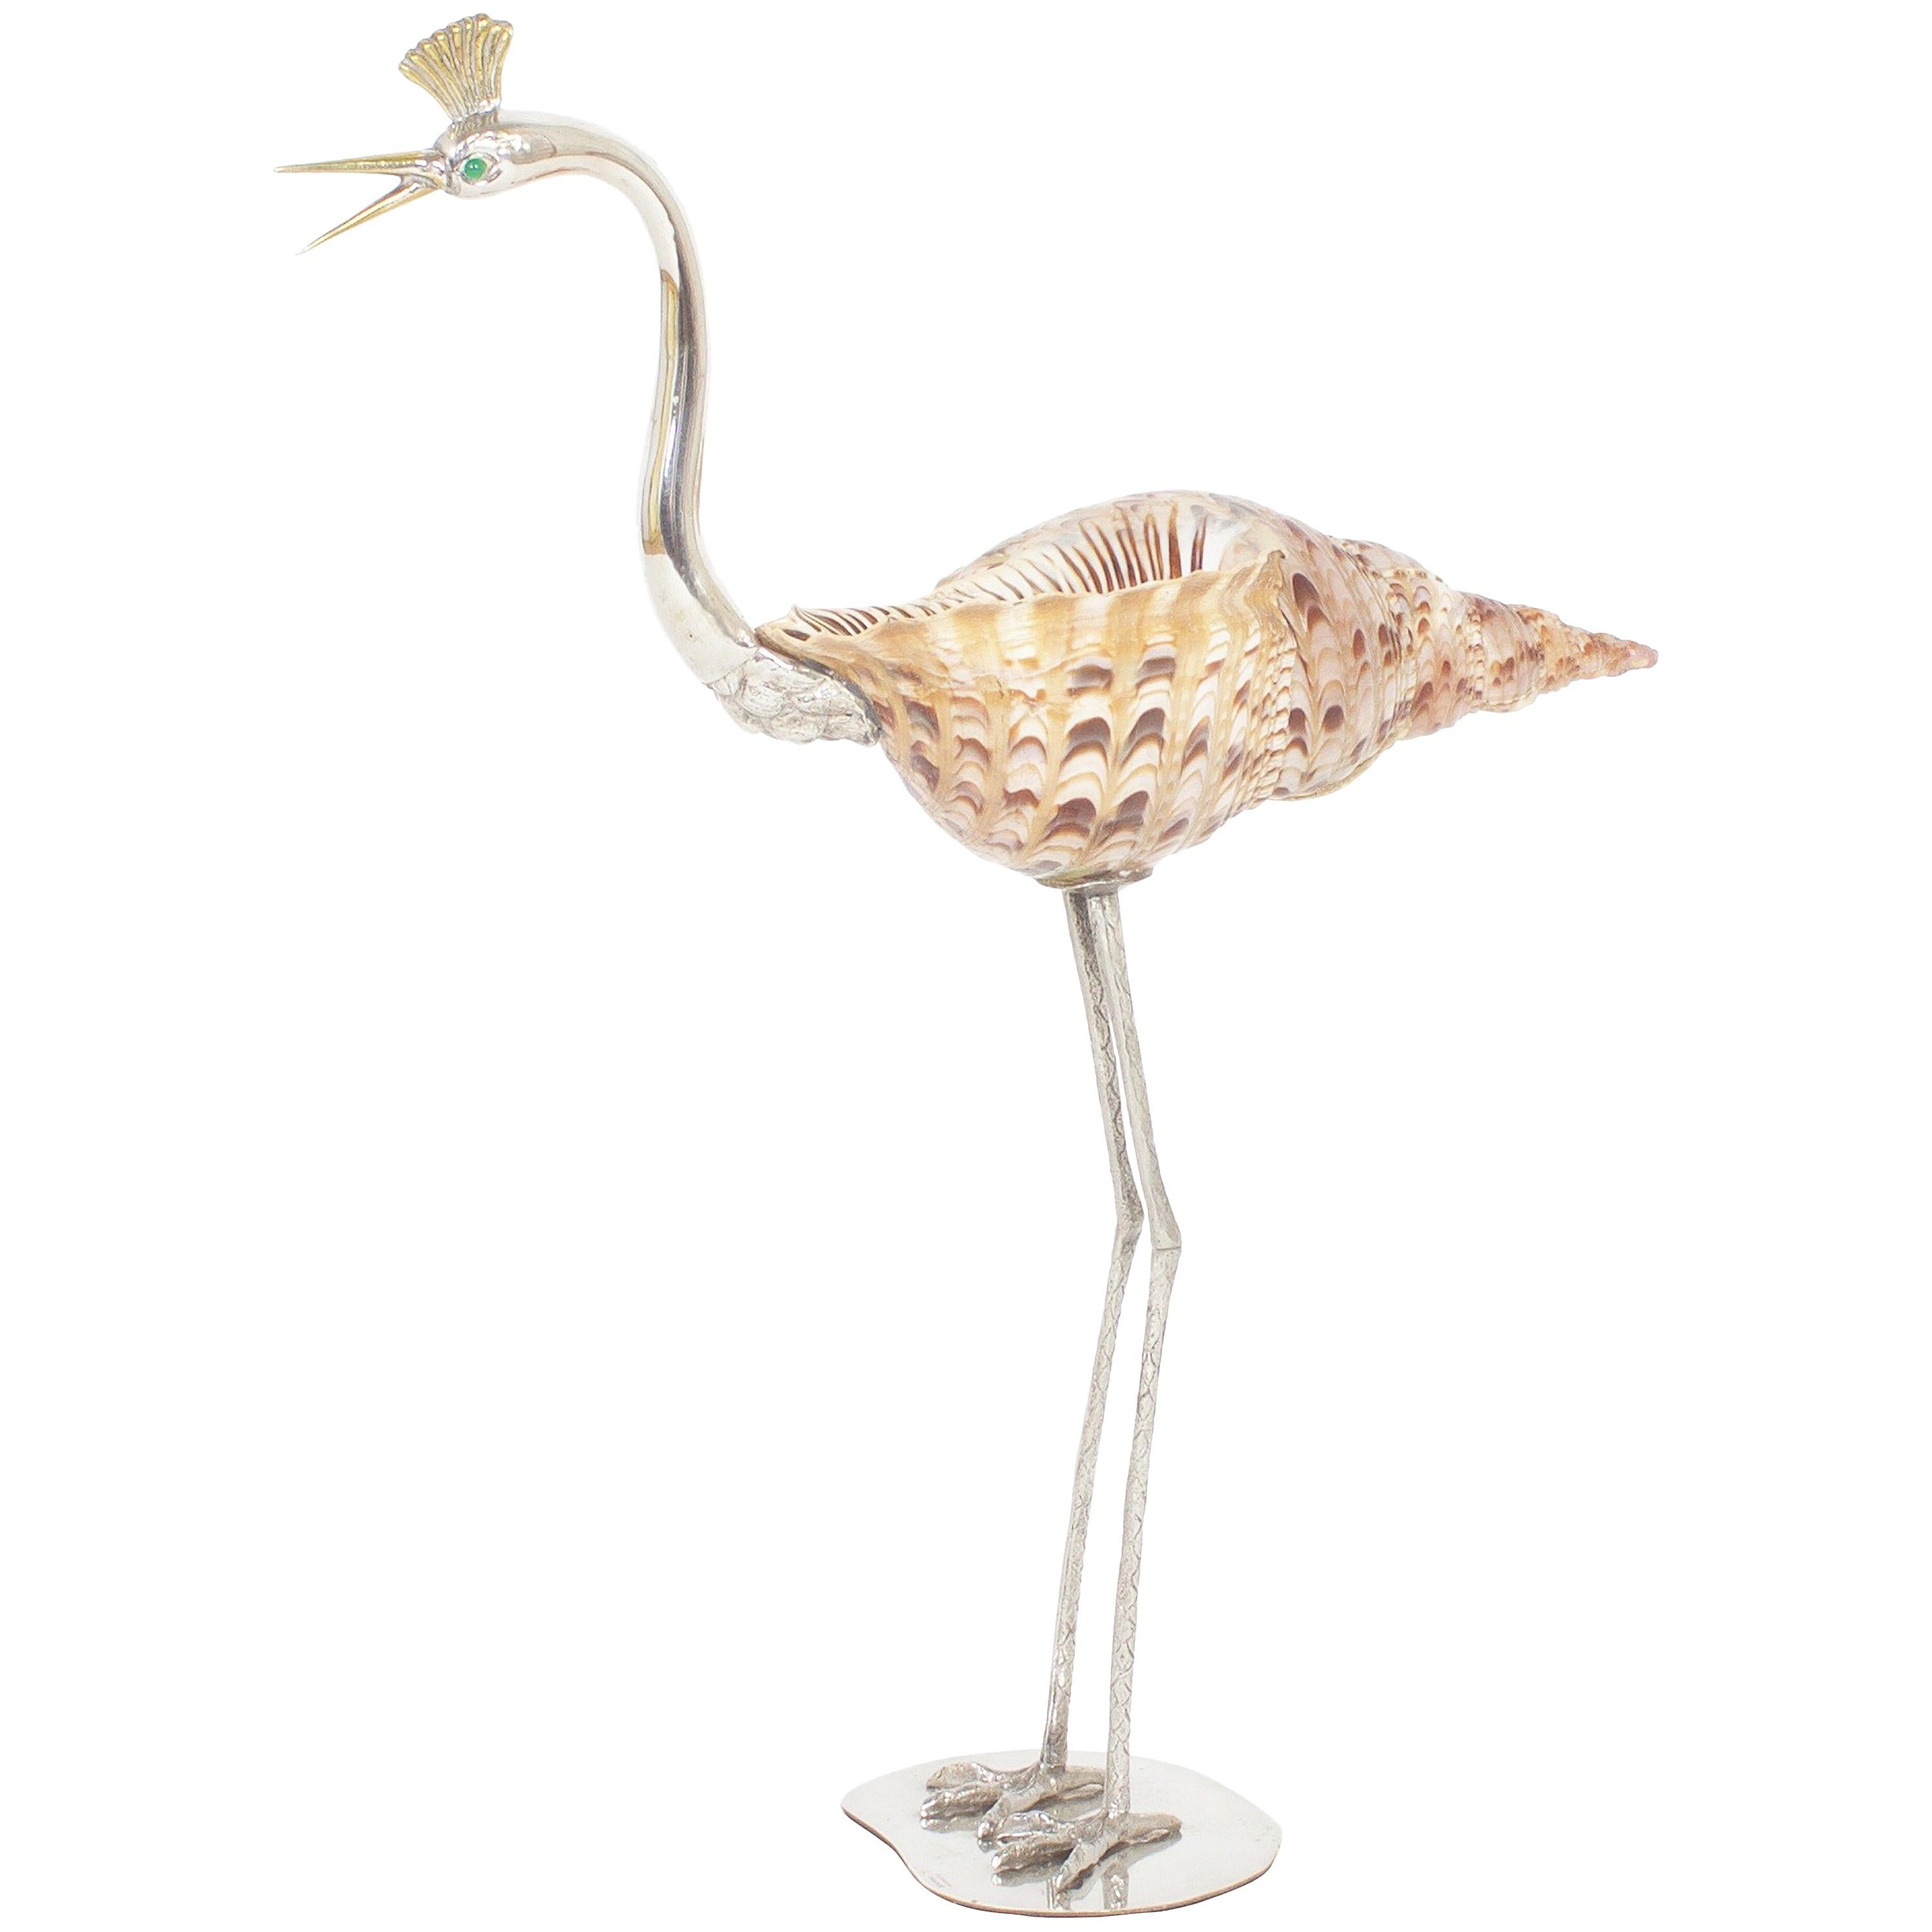 Vintage Midcentury Bird with Shell Sculpture by Binazzi